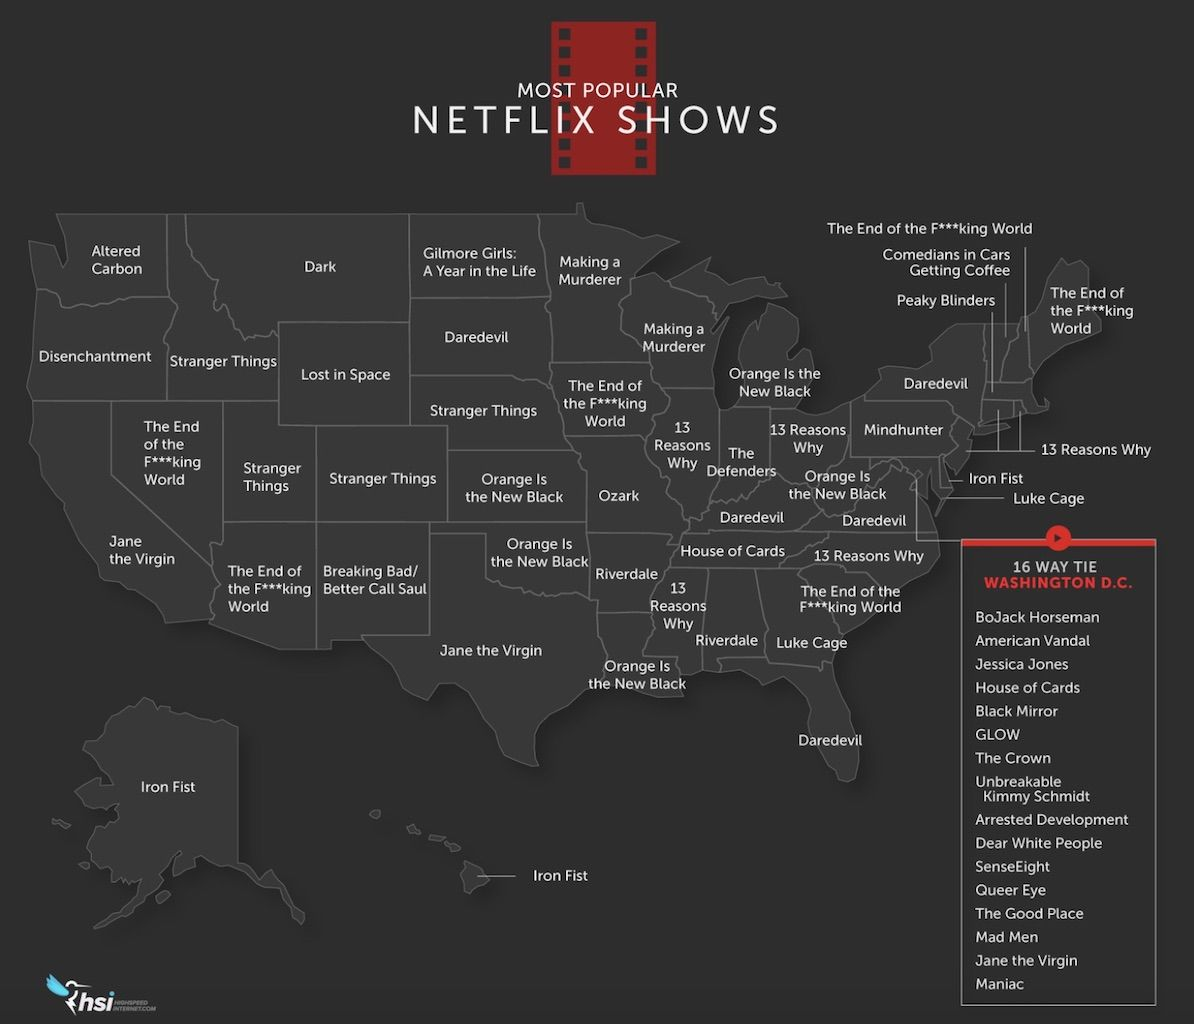 Map of the most popular Netflix shows by state